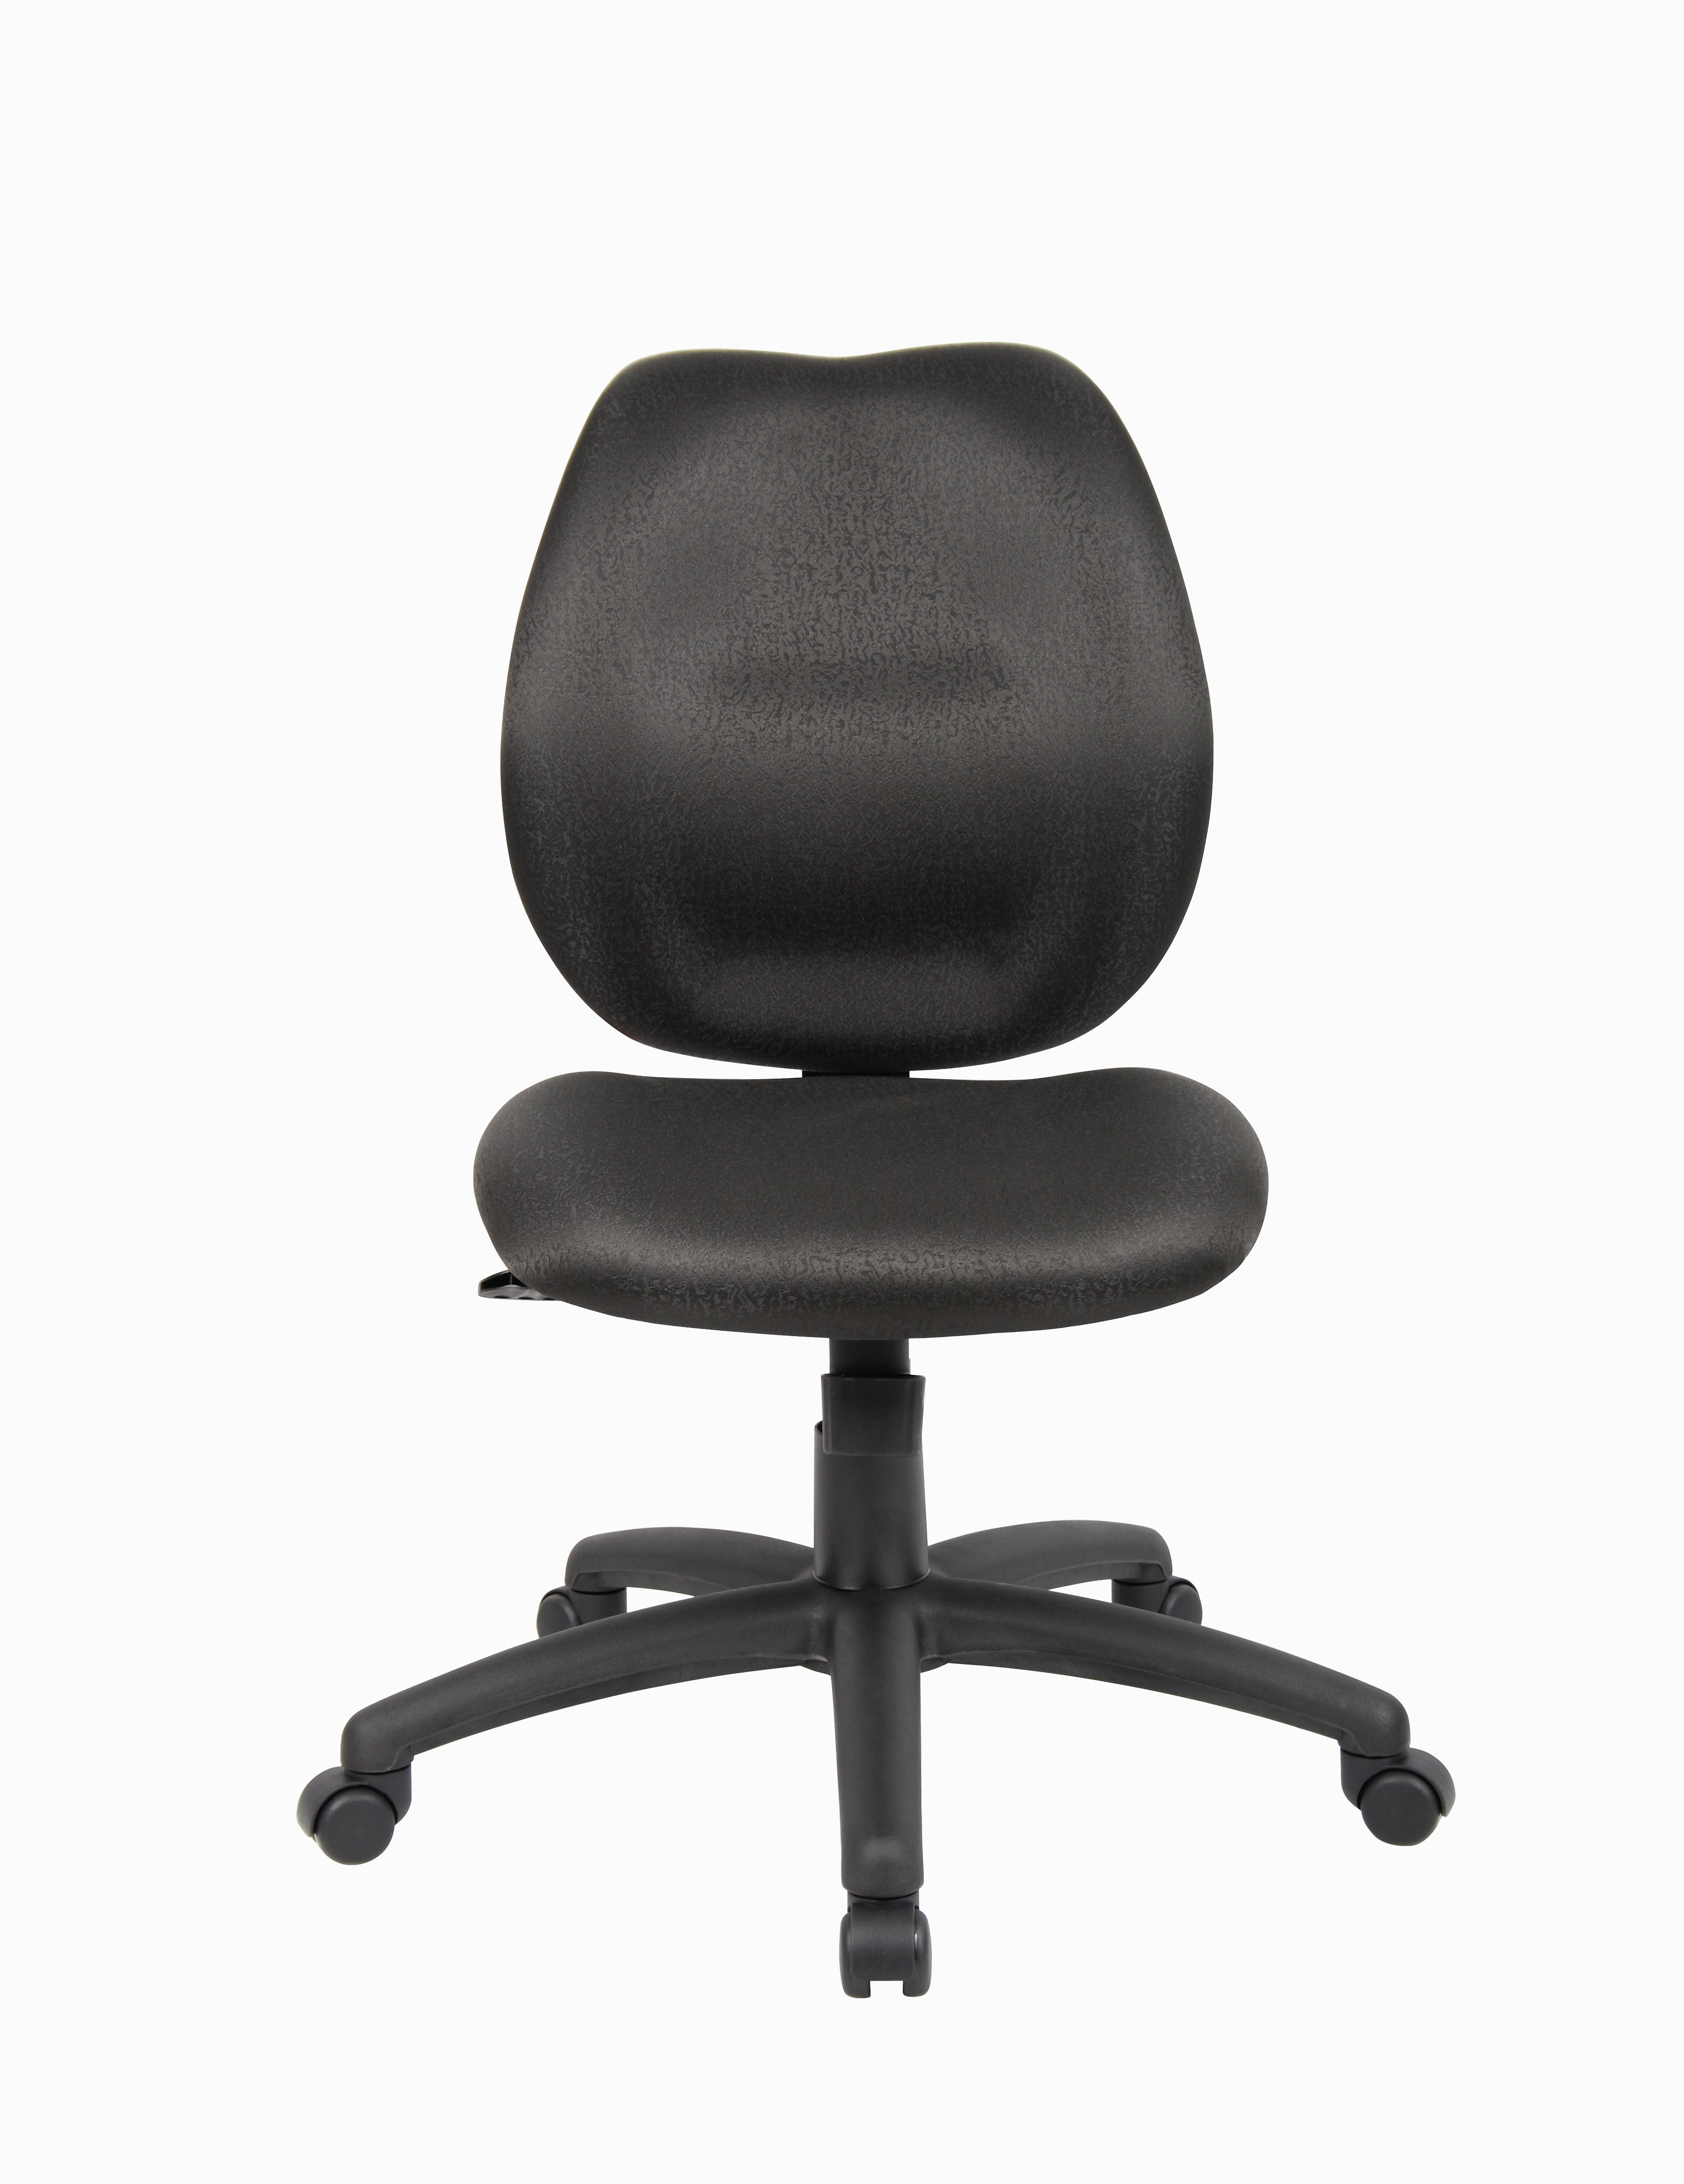 ergonomic chair without arms dining cushion covers boss mid back task office black